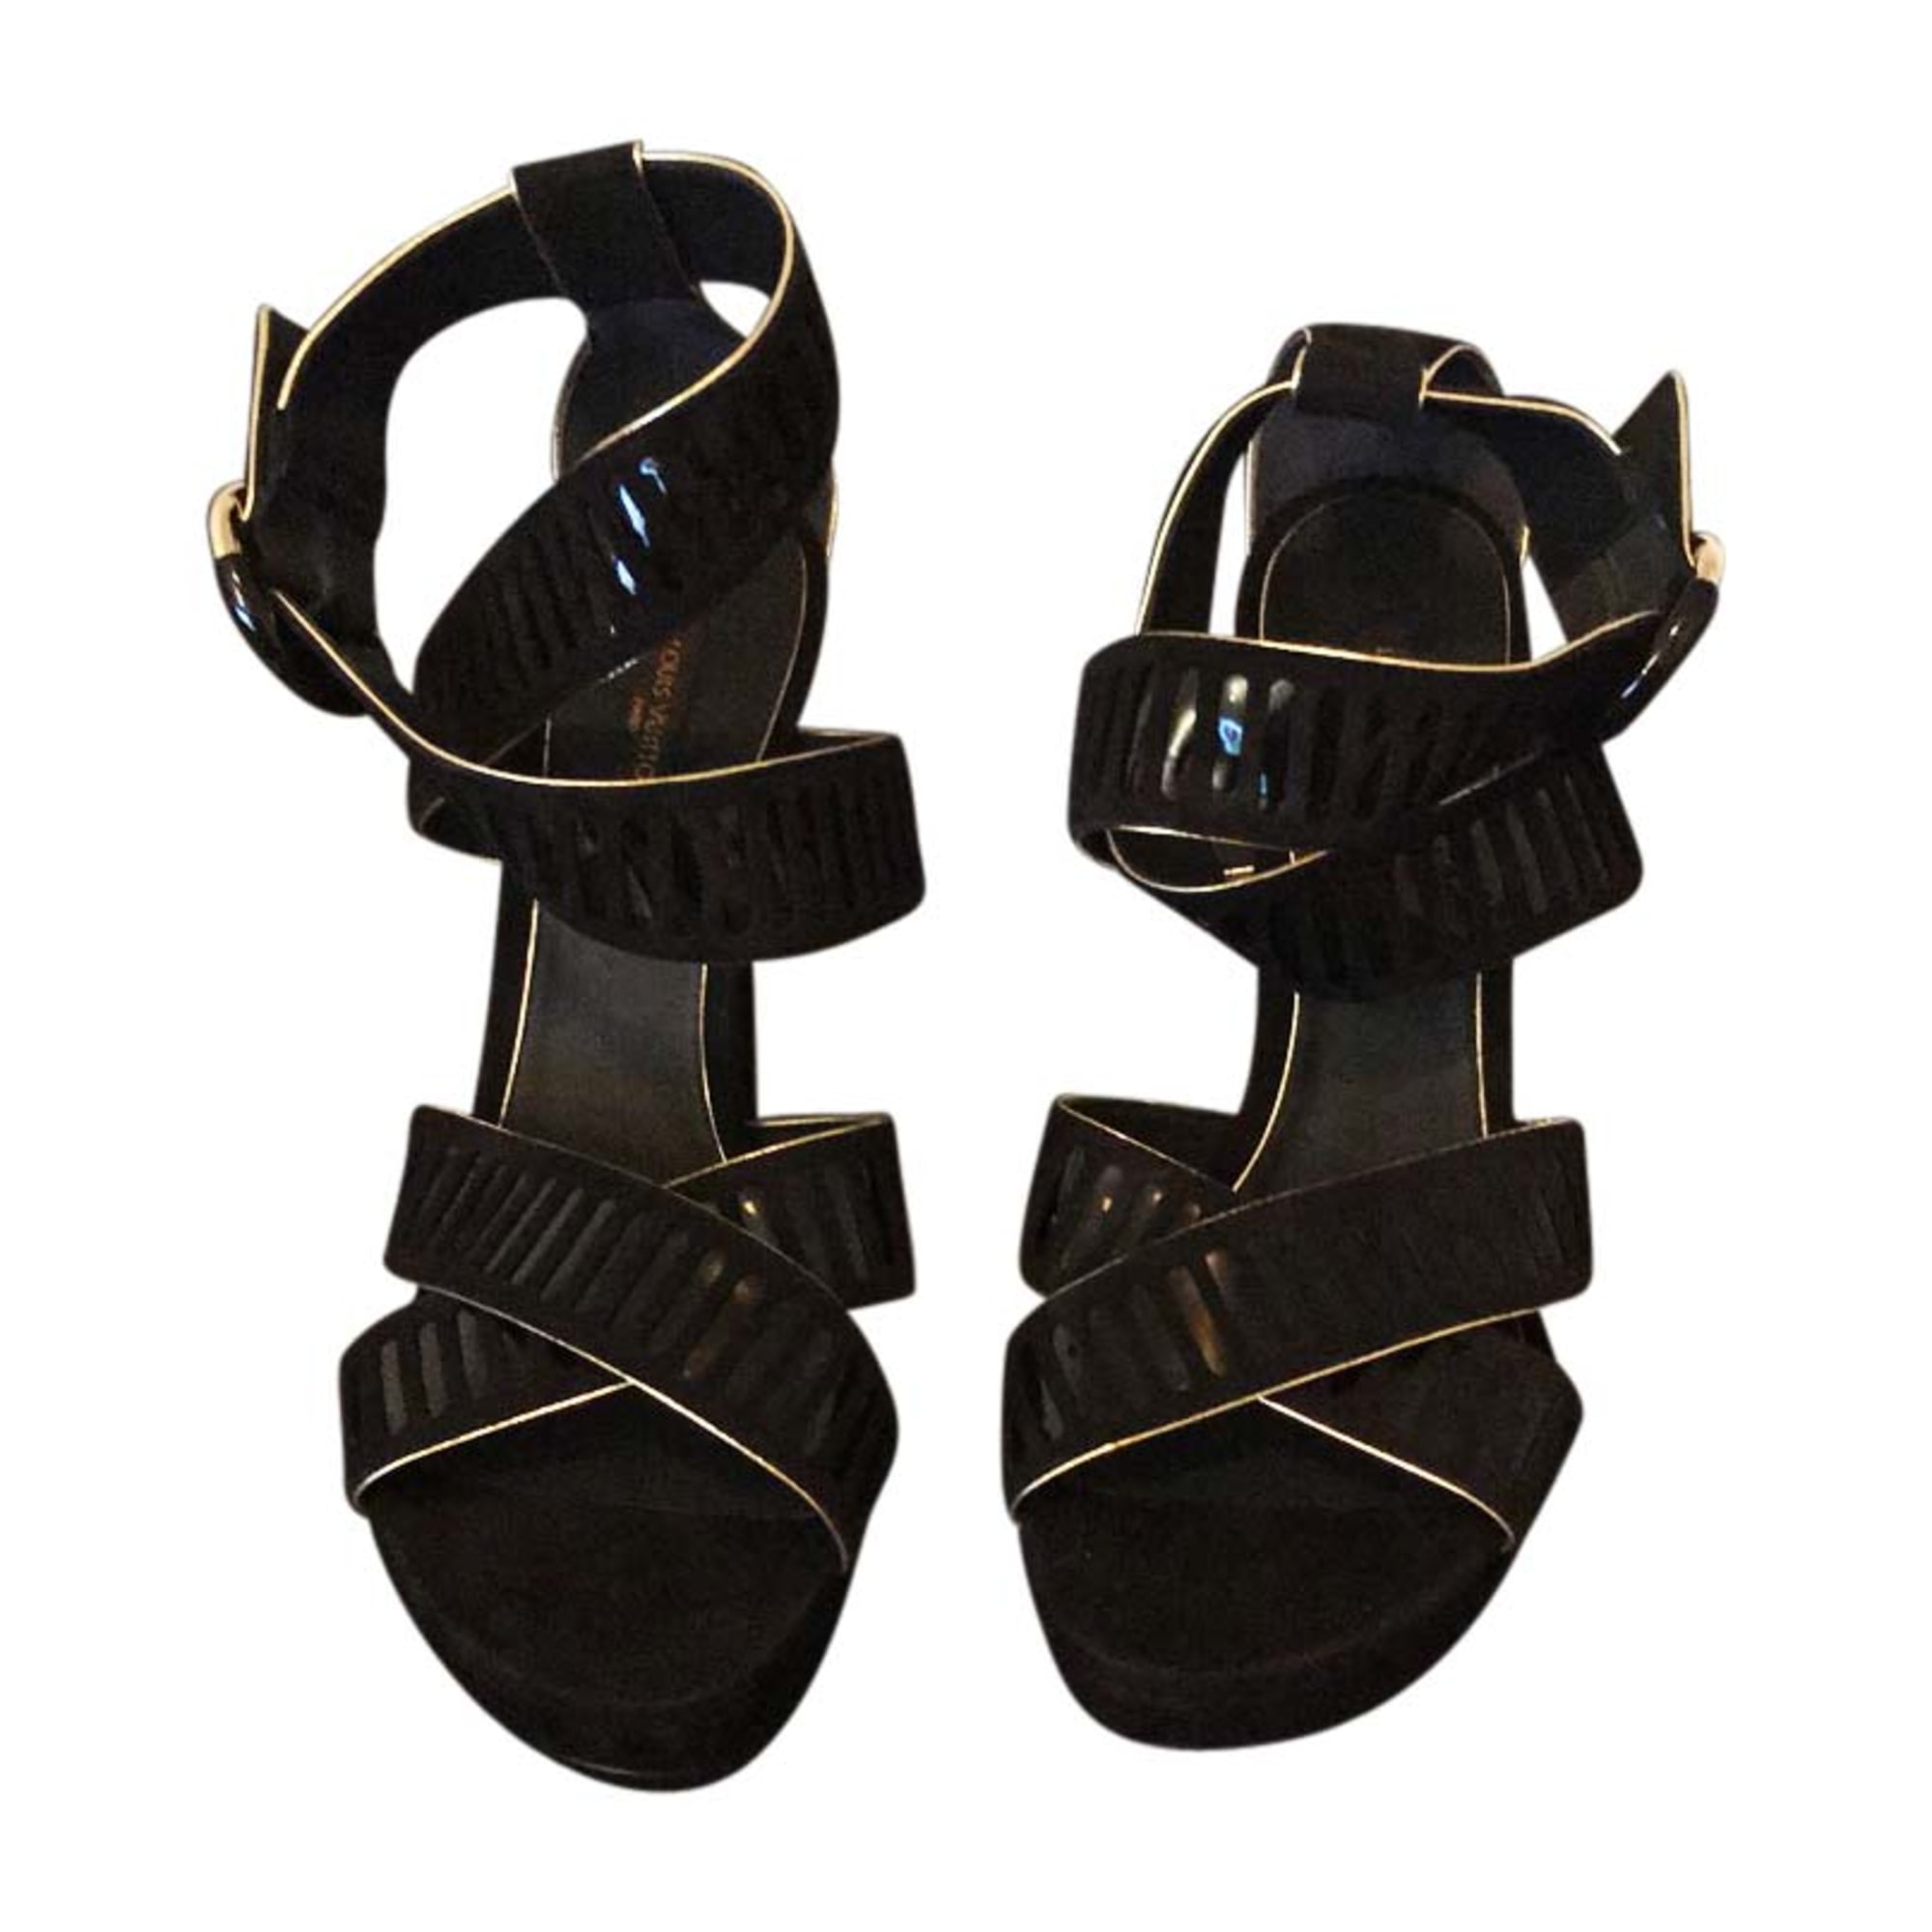 0befe9f48a2 Heeled Sandals LOUIS VUITTON 39 black - 7742208